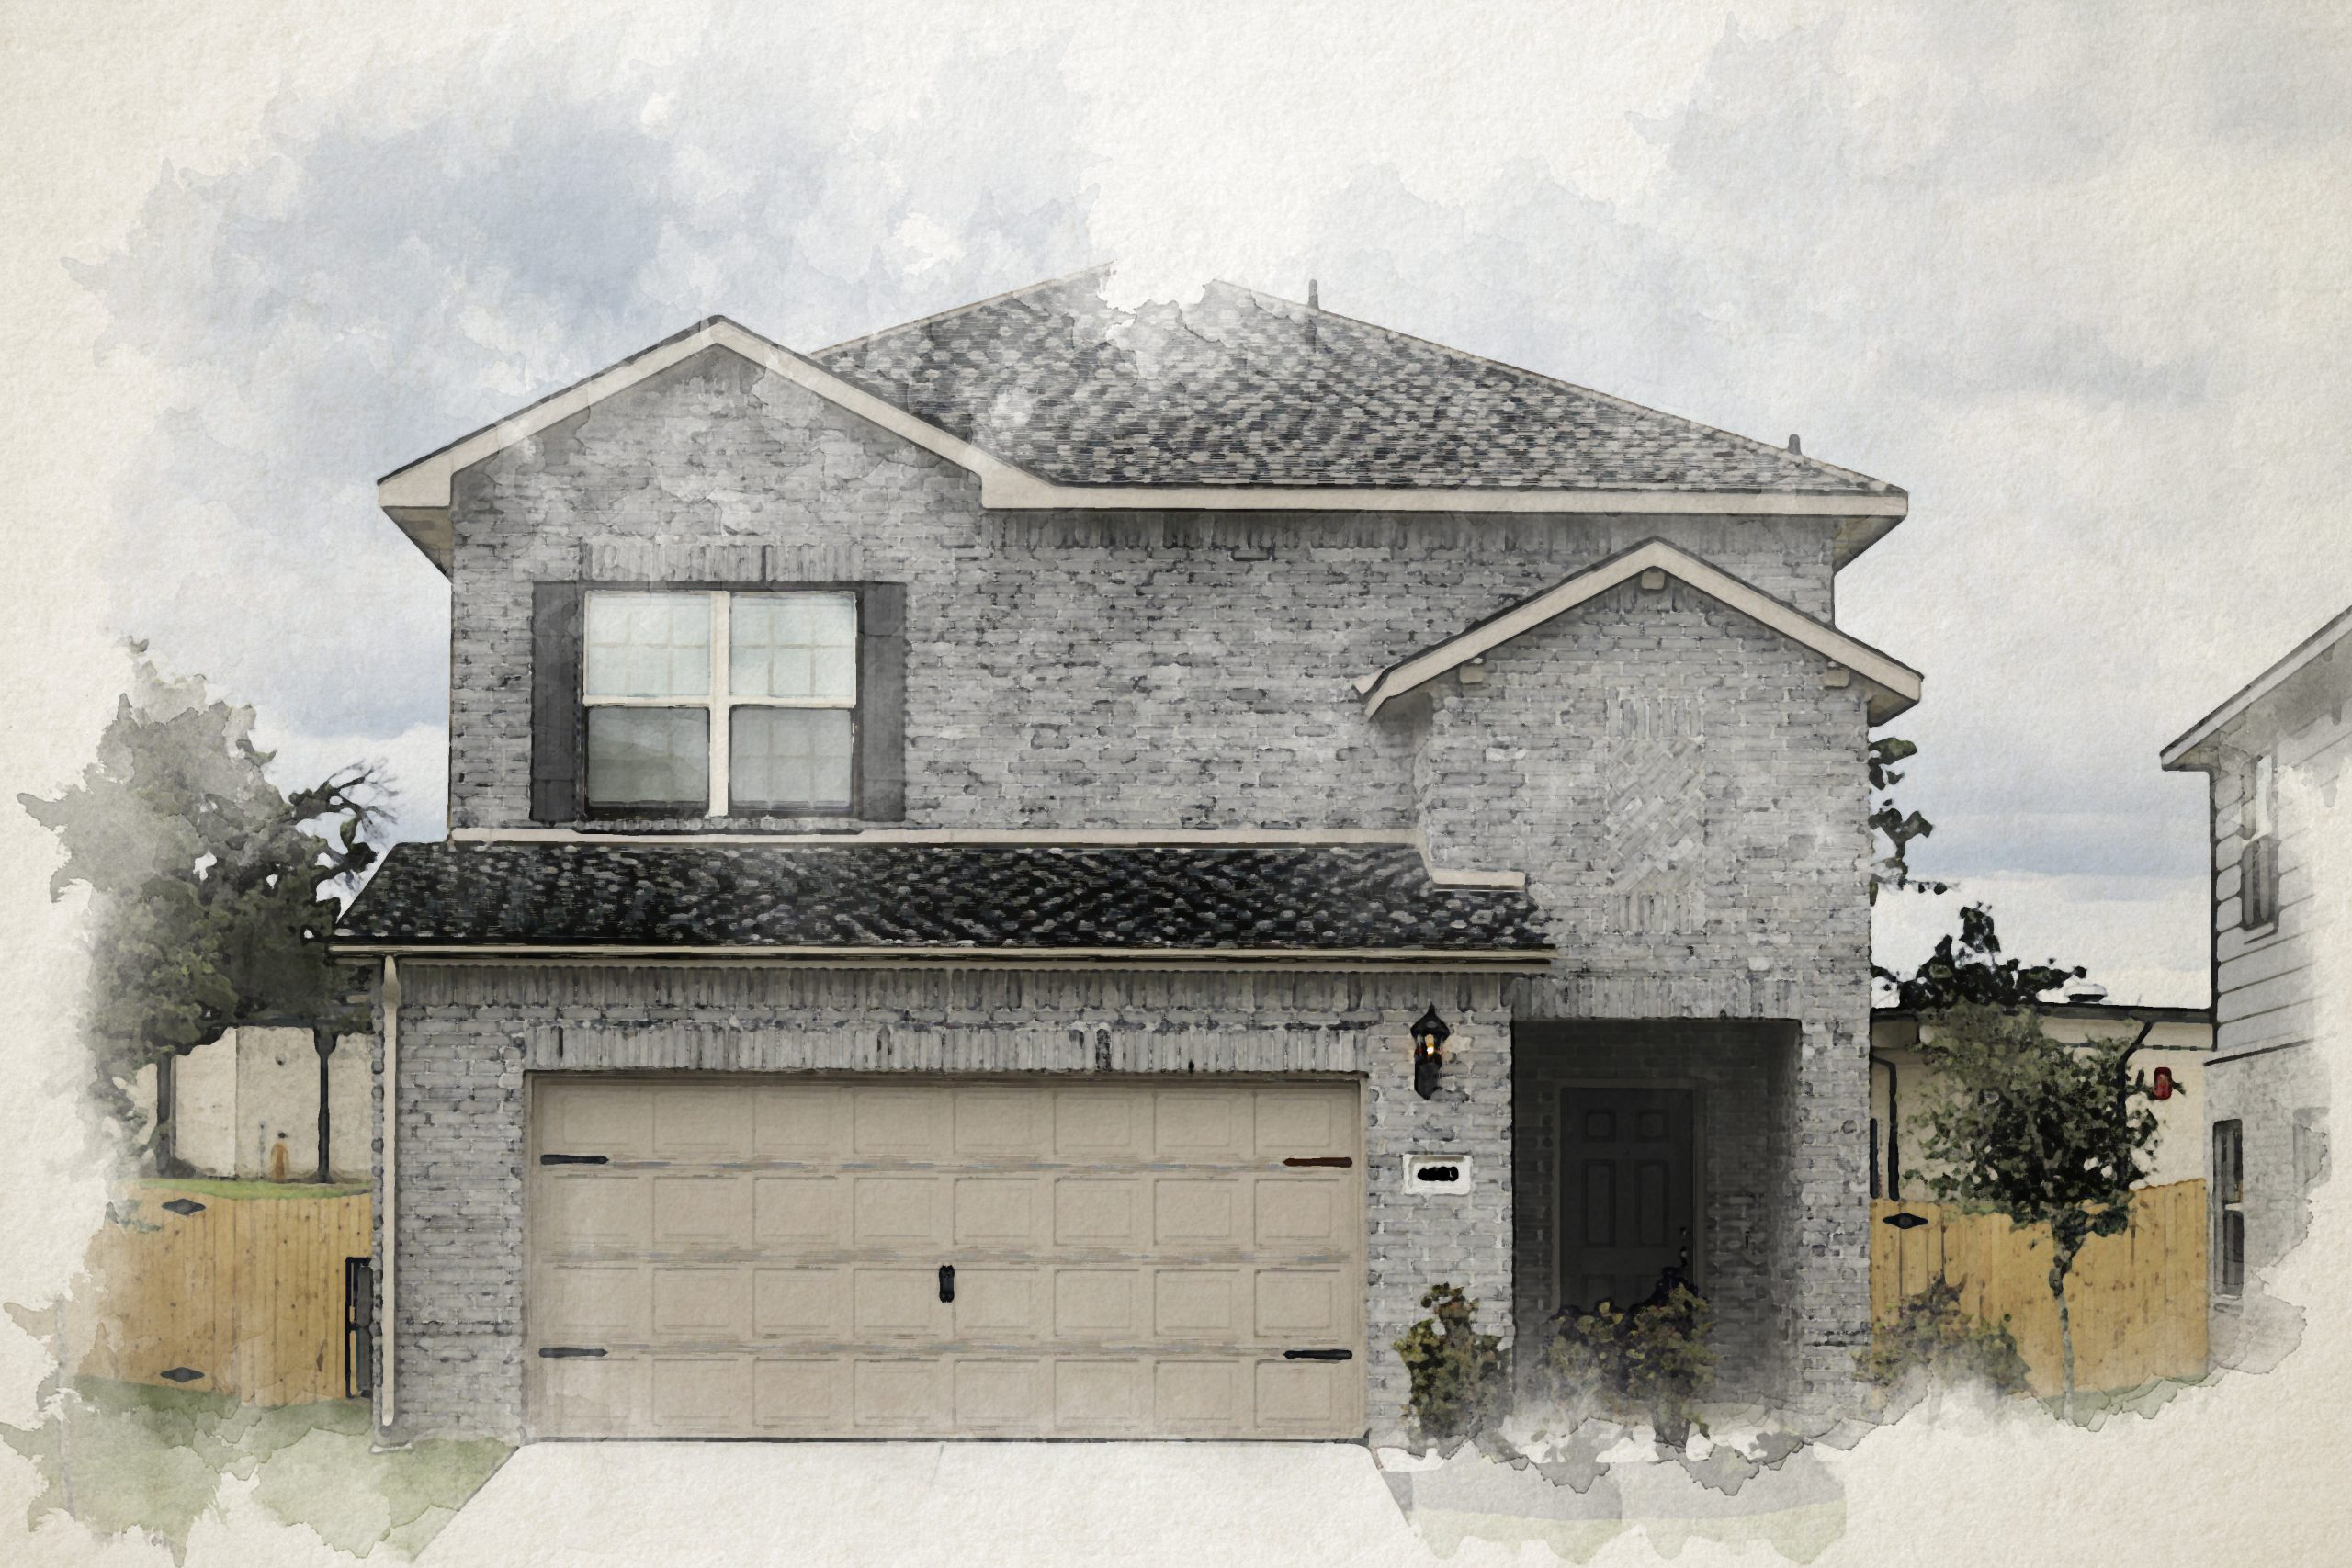 3103 Refugio Ave   New Home Available in Fort Worth, Texas